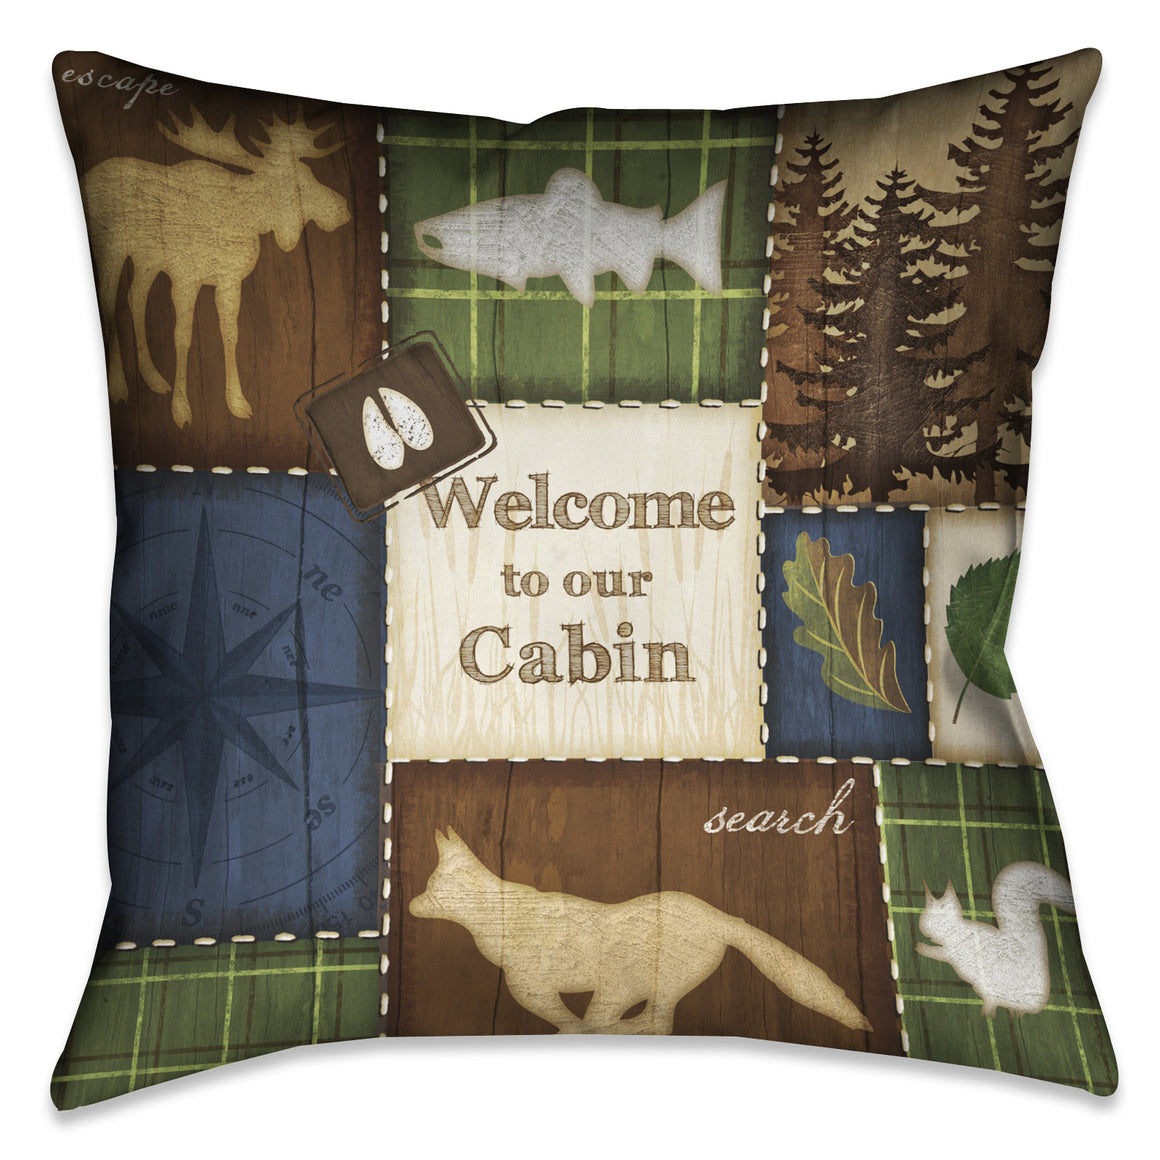 Welcome to Our Cabin Indoor Decorative Pillow